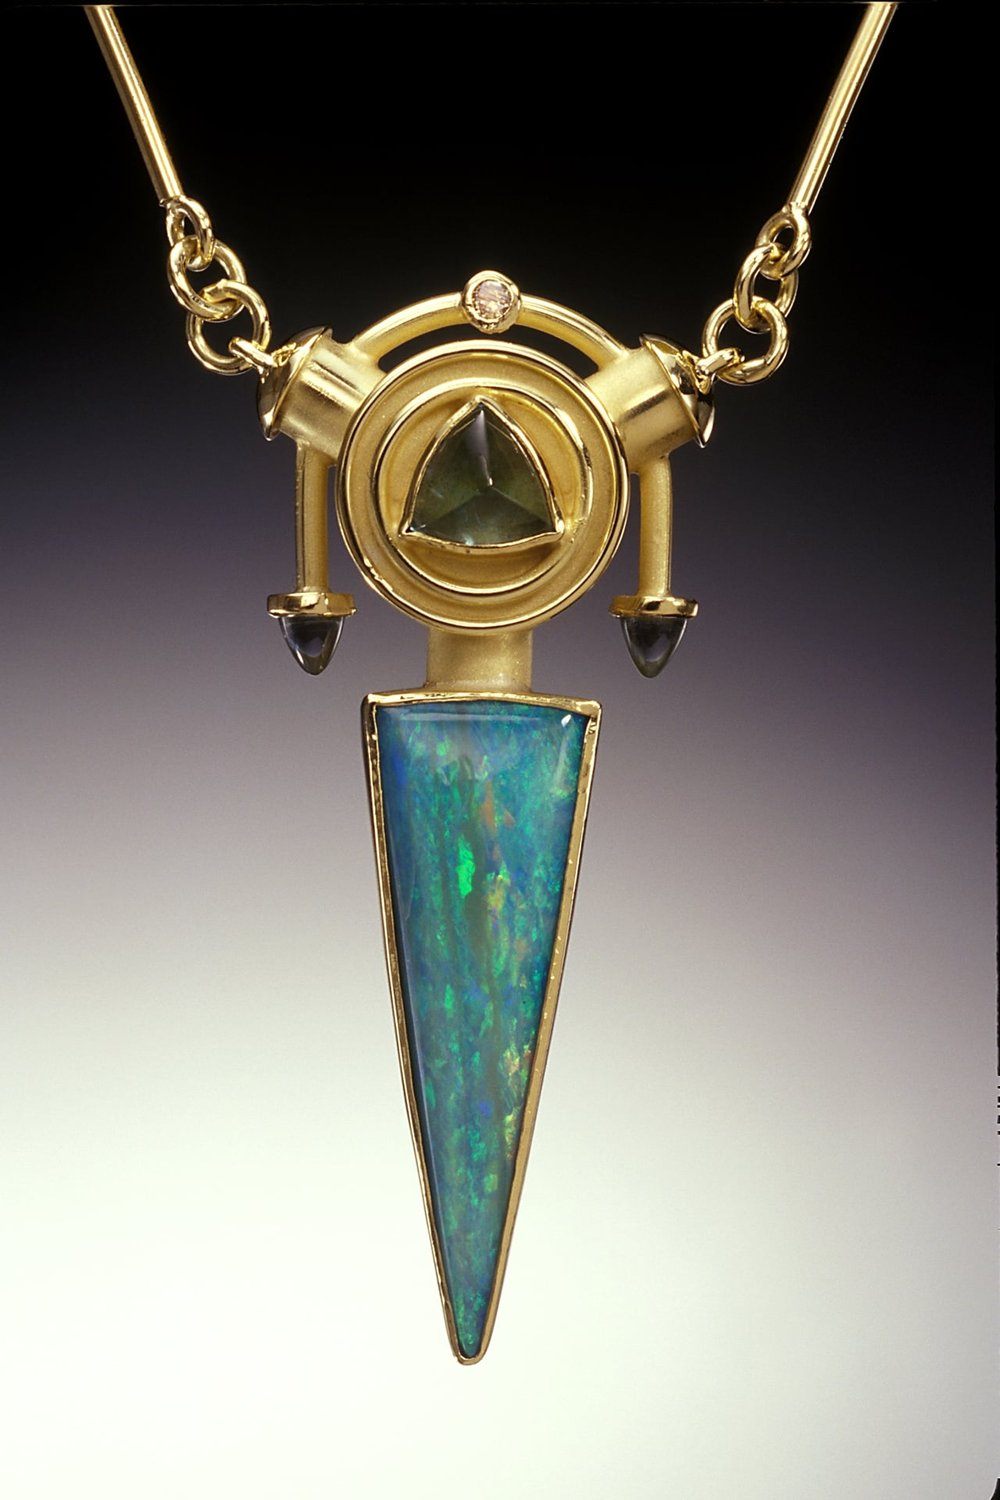 3 boulder opal necklace.jpg